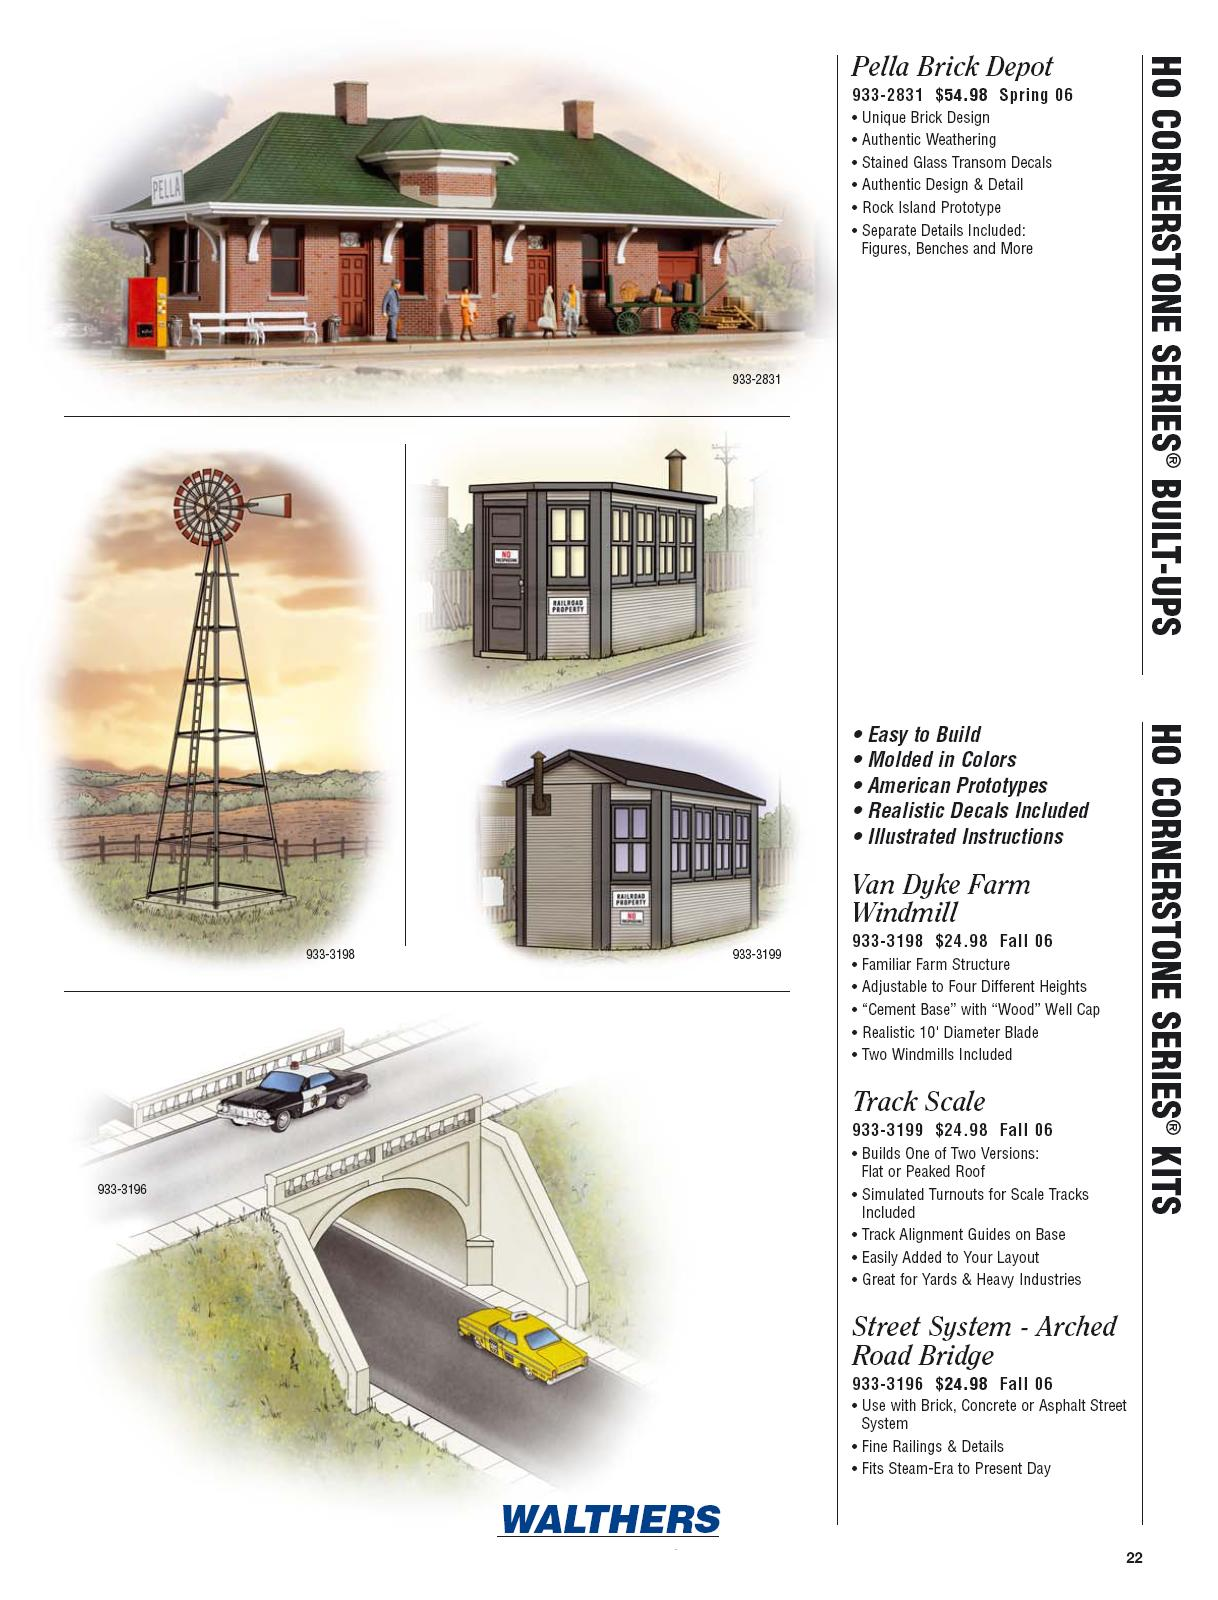 Walthers 2006 Cataloge Buildings page 2